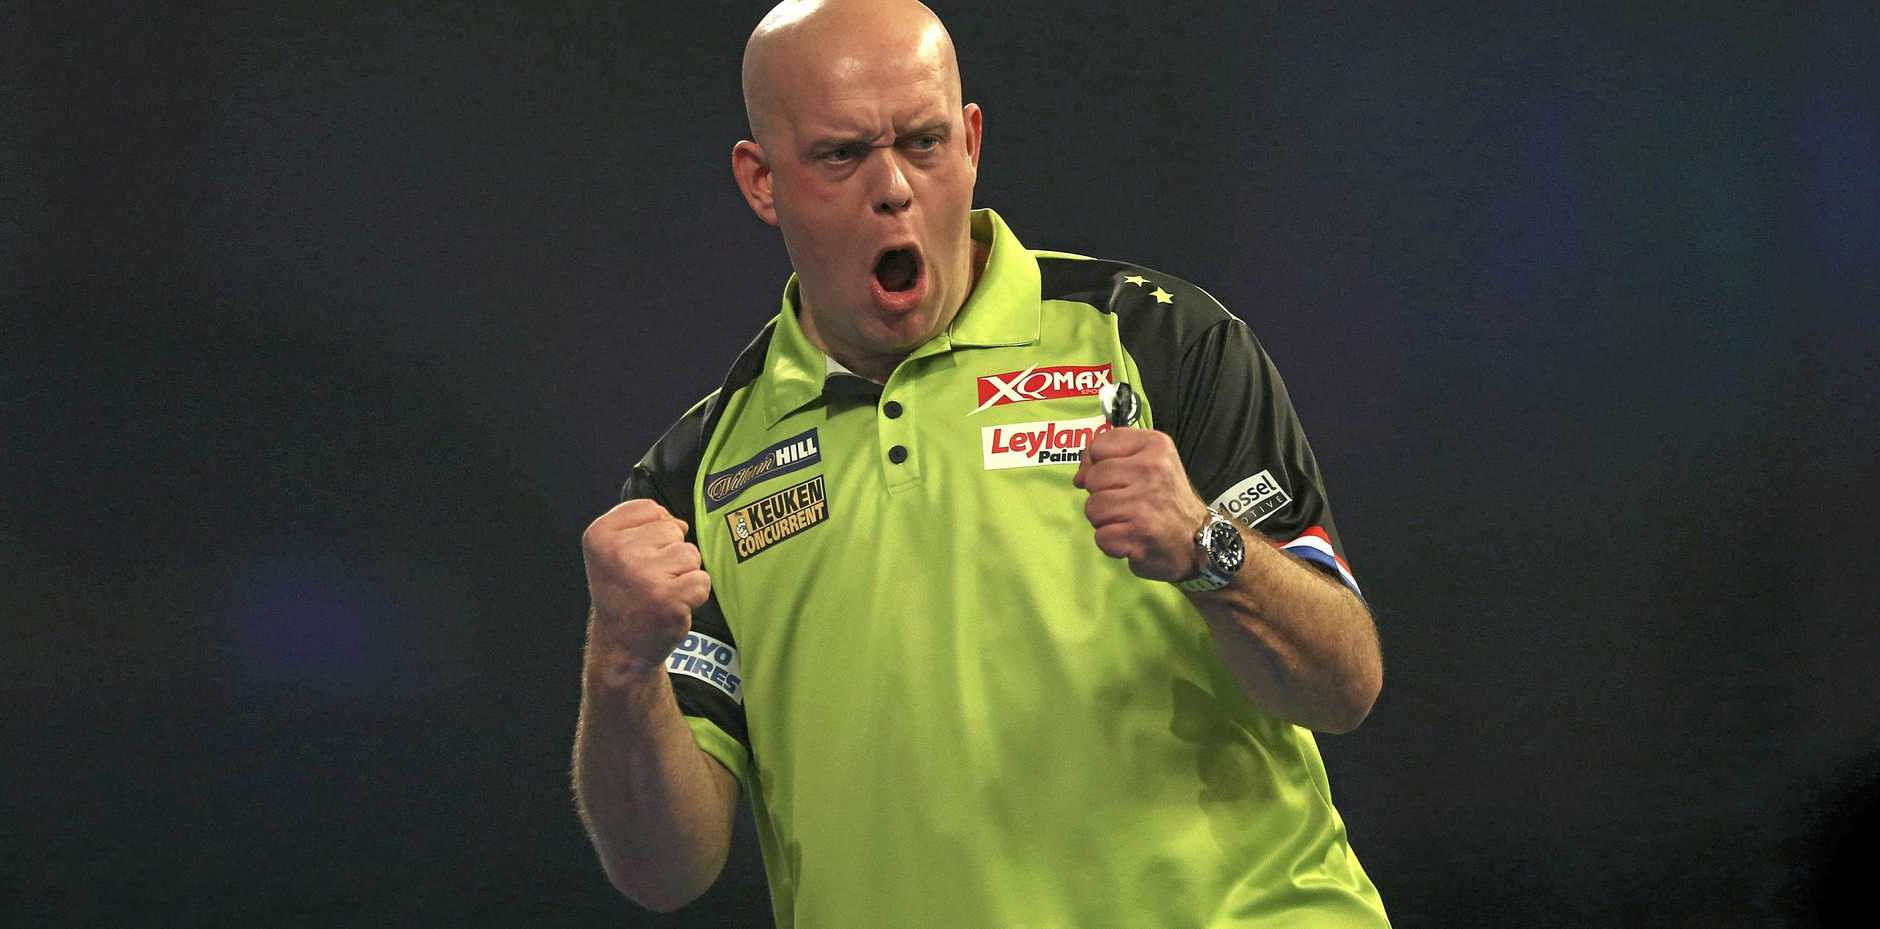 Michael Van Gerwen gets pumped up during a key moment of his match with Michael Smith for the world darts championship. Picture: Steven Paston/AP